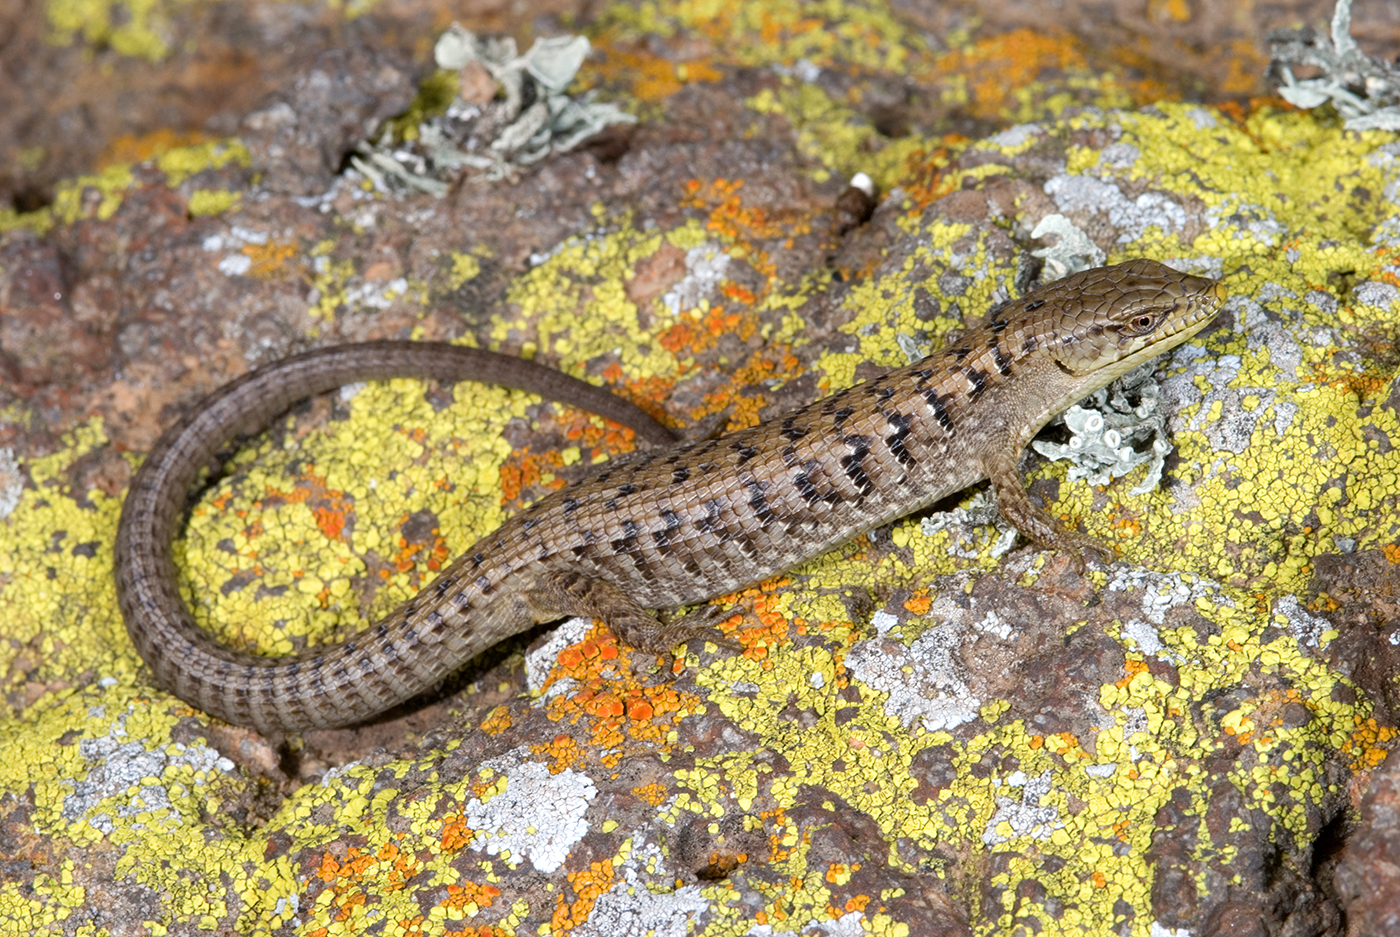 California Alligator Lizard. Photo by Stuart Wilson.